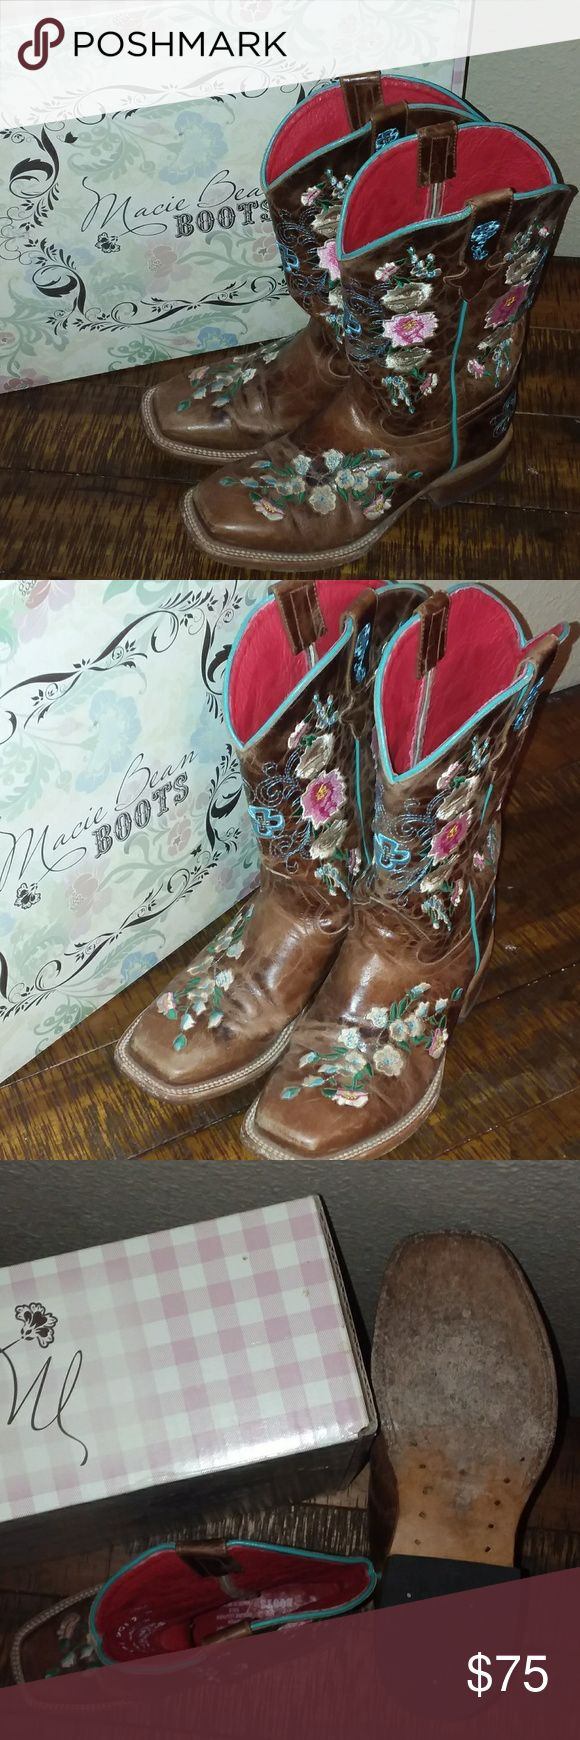 Macie Bean Girl's Boots Size 3 Macie Bean girls square toe boots size 3. Foral design and honey brown in color. Only worn a handful of times. Price is $75 OBO. Paid $129. Macie Bean Shoes